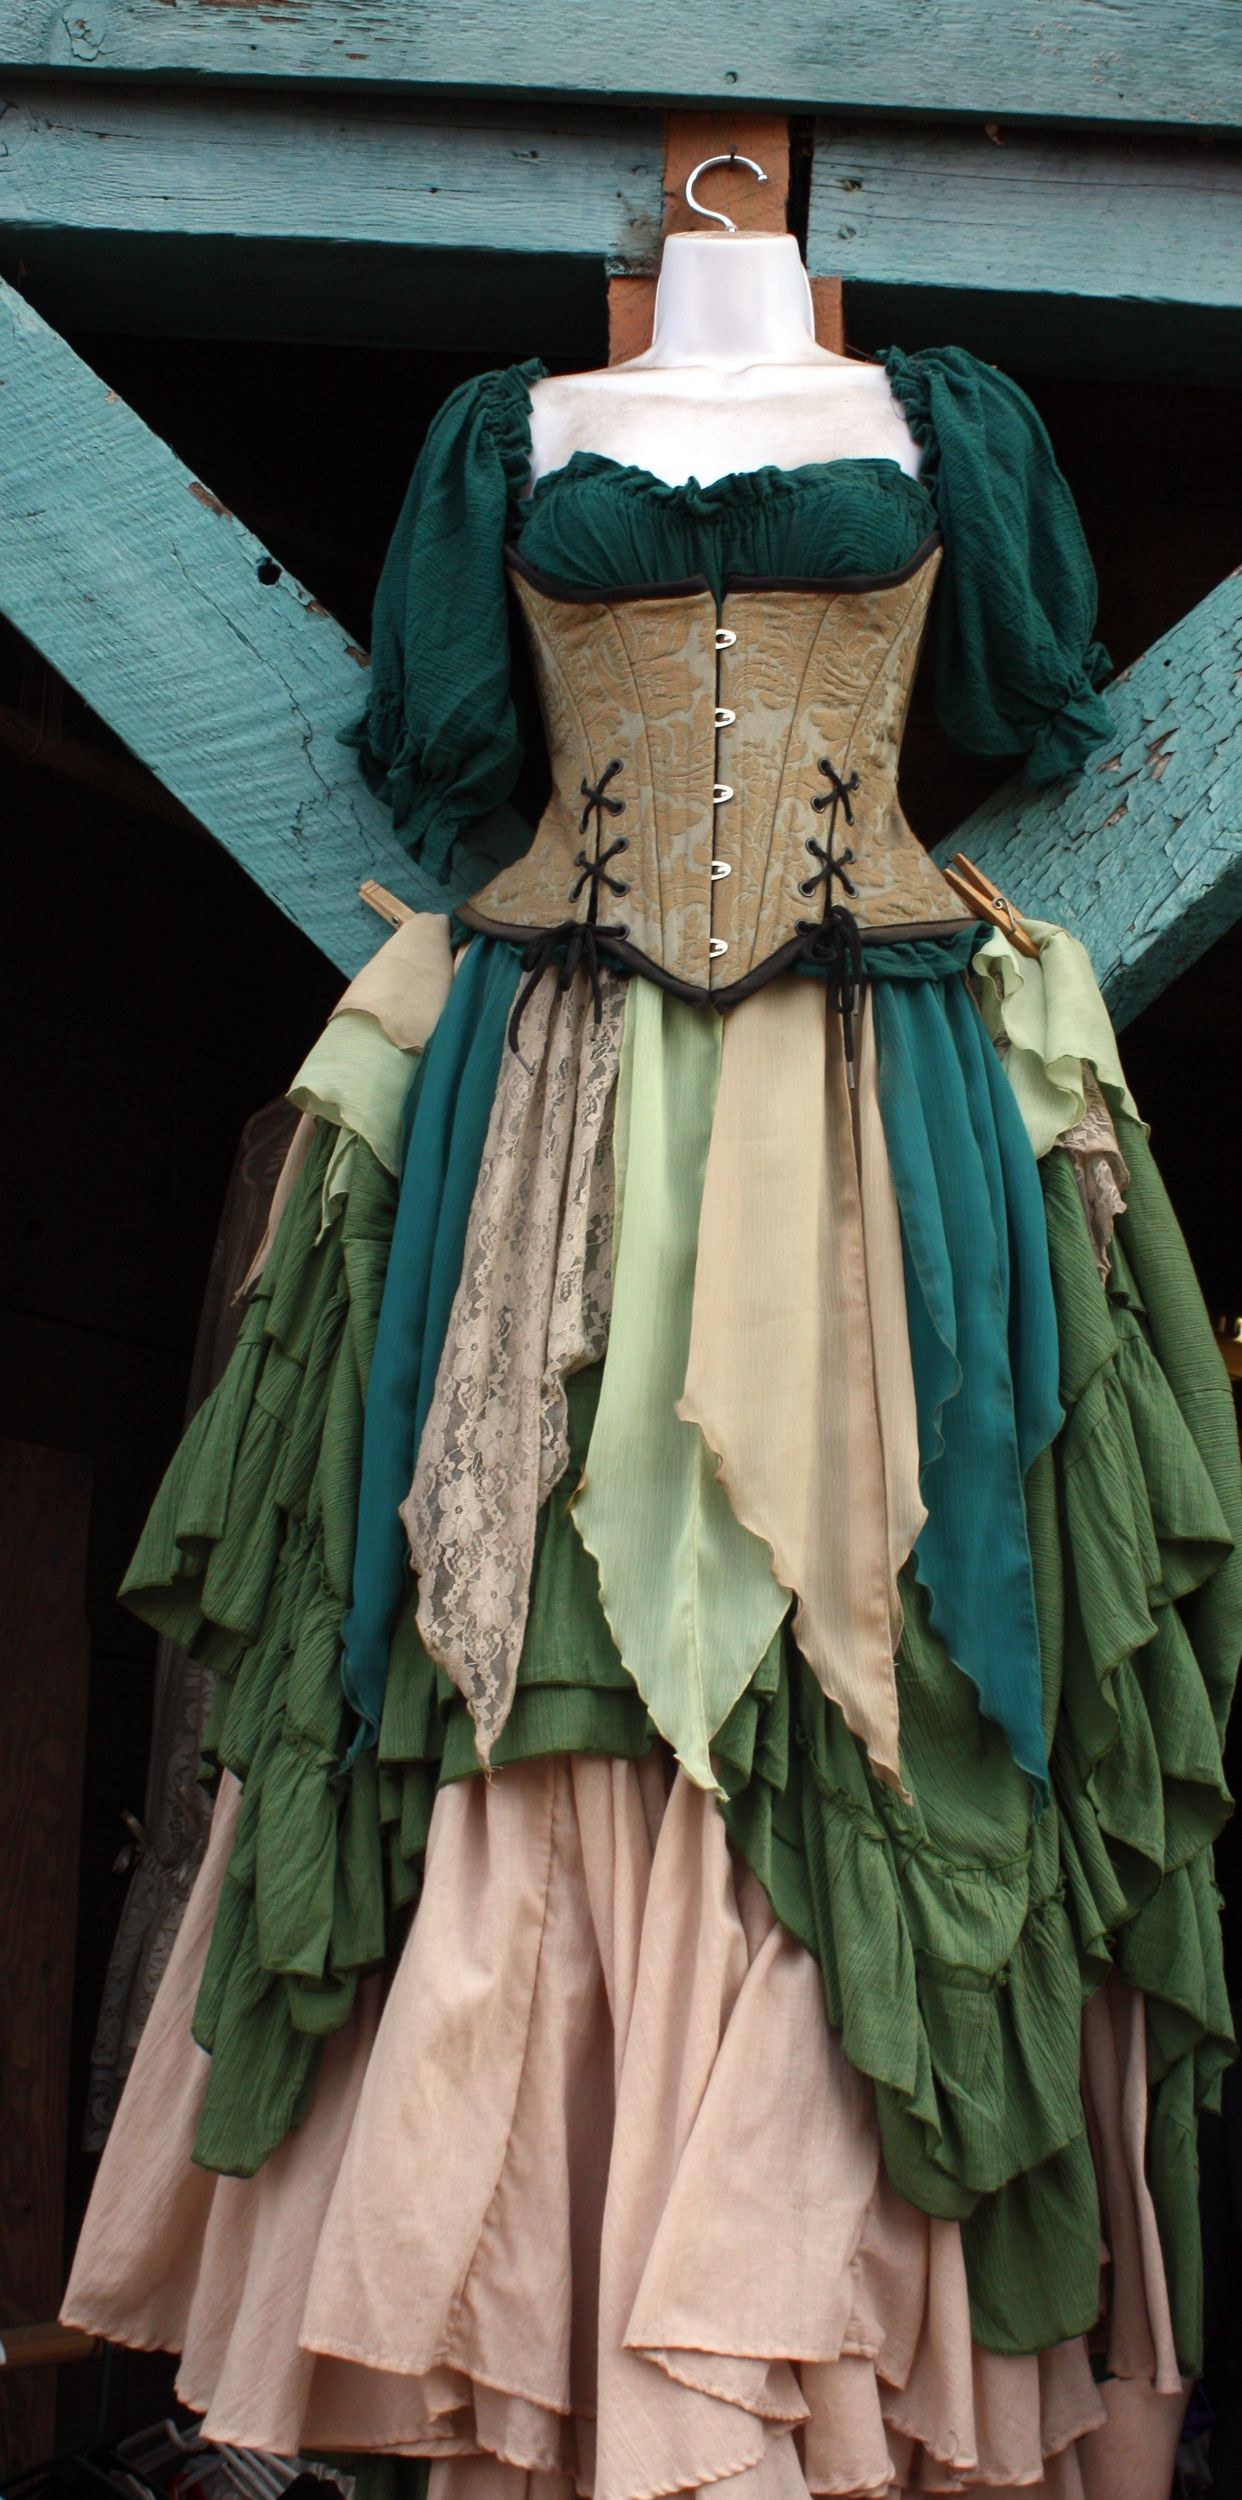 Festival Garb • Photography by Jodee Ungs | Renaissance Garb ...